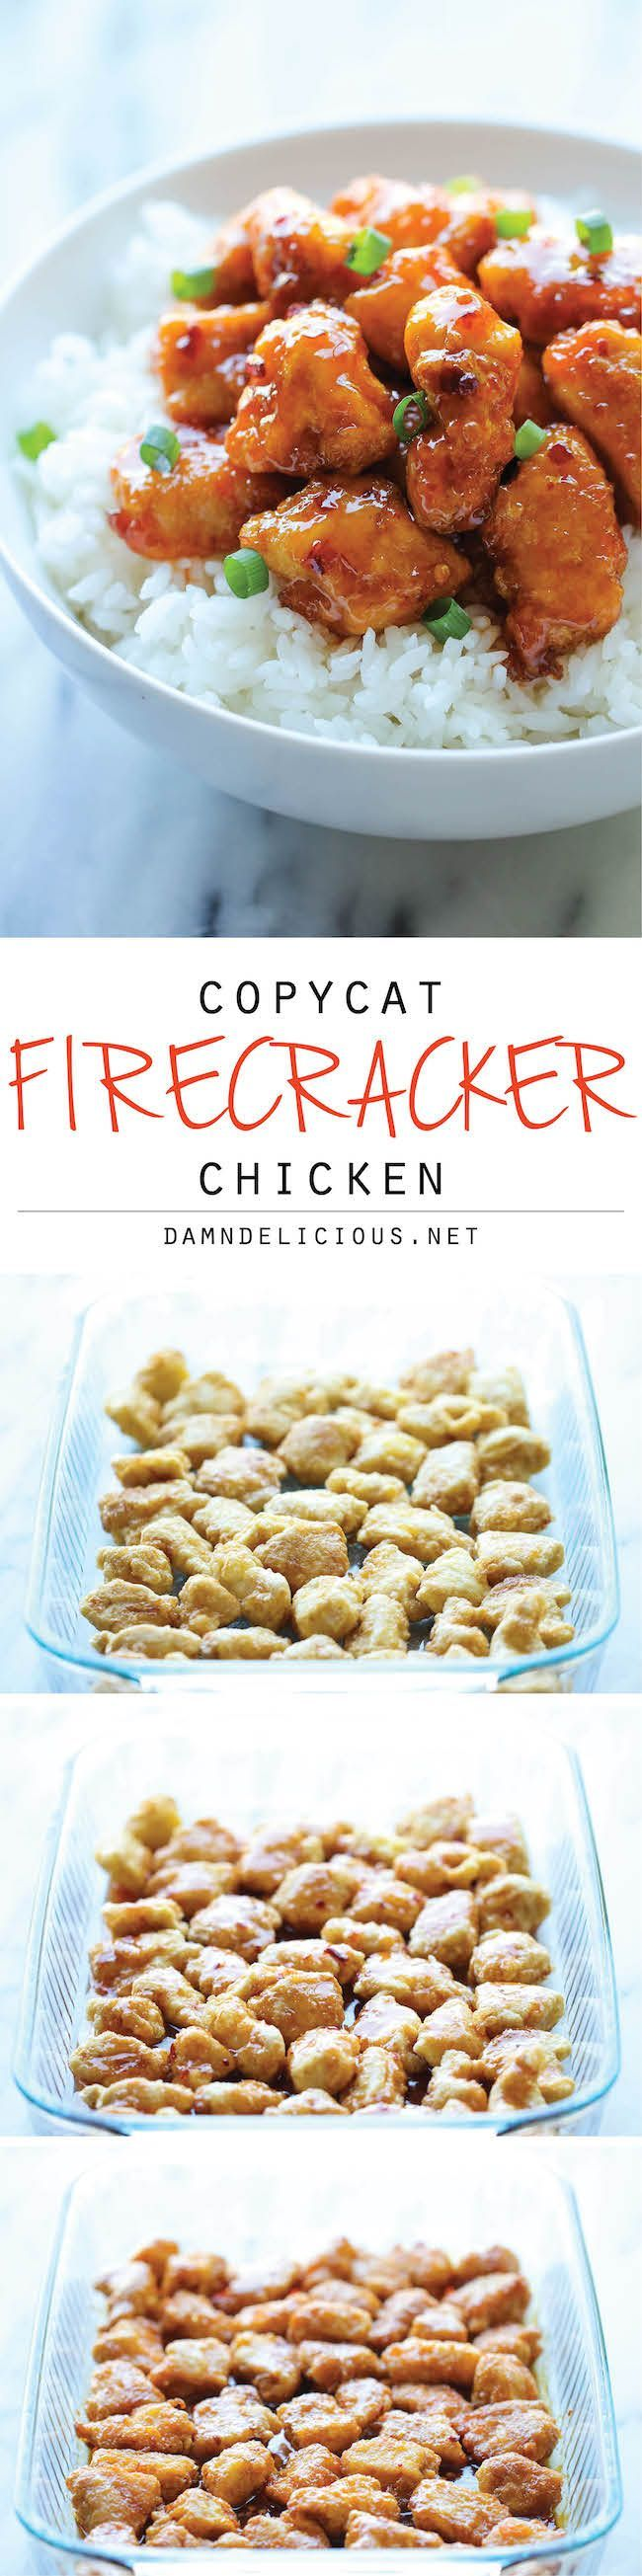 Chicken Firecracker Chicken - The most amazing combination of sweet and spicy flavors that tastes a million times better than take-out!Firecracker Chicken - The most amazing combination of sweet and spicy flavors that tastes a million times better than take-out!